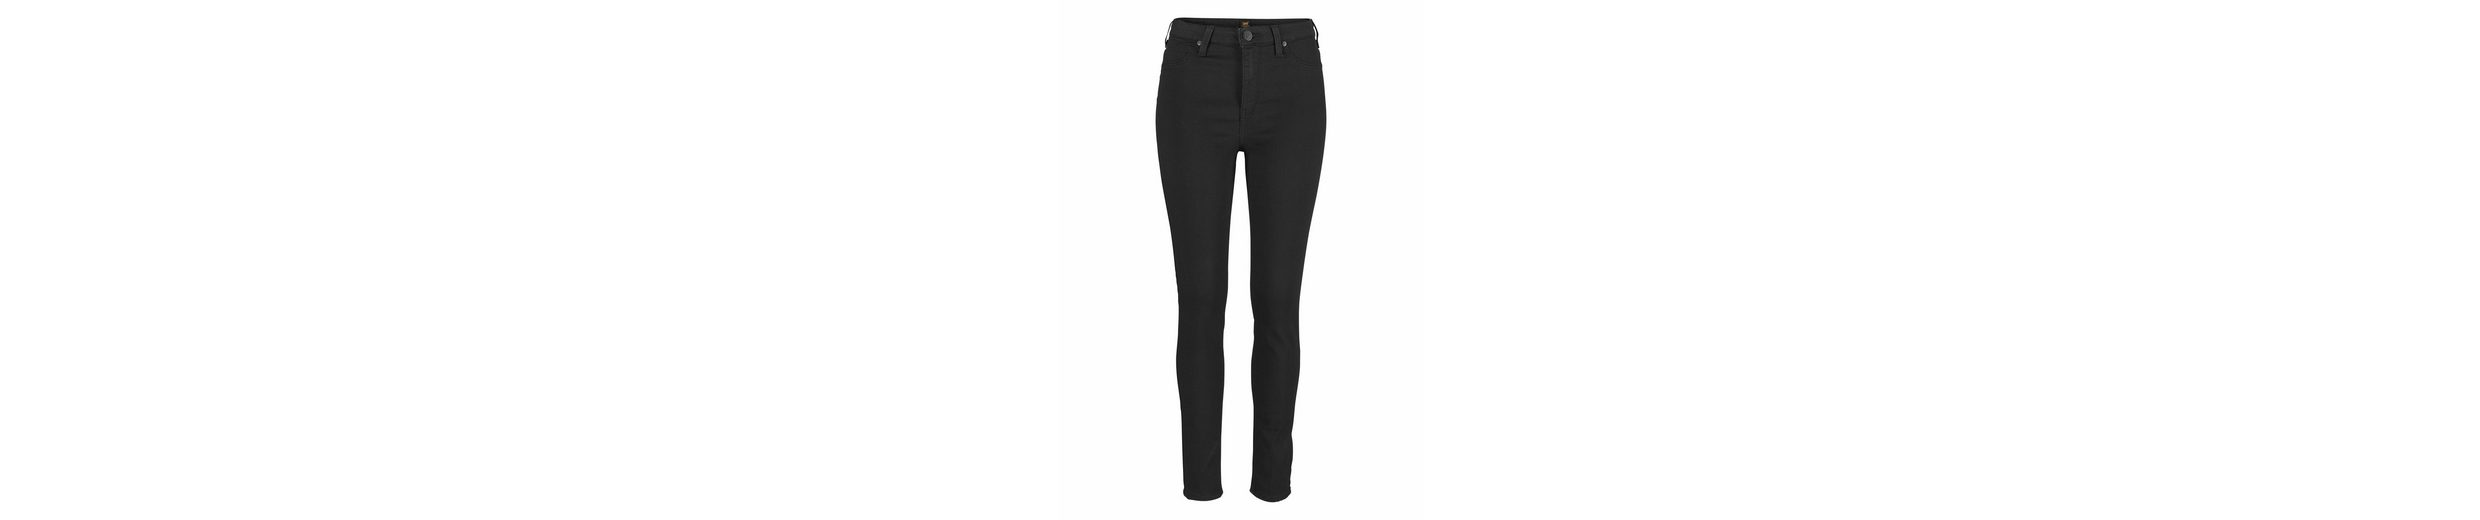 Lee® Jeansjeggings Skyler, High Waist Skinny